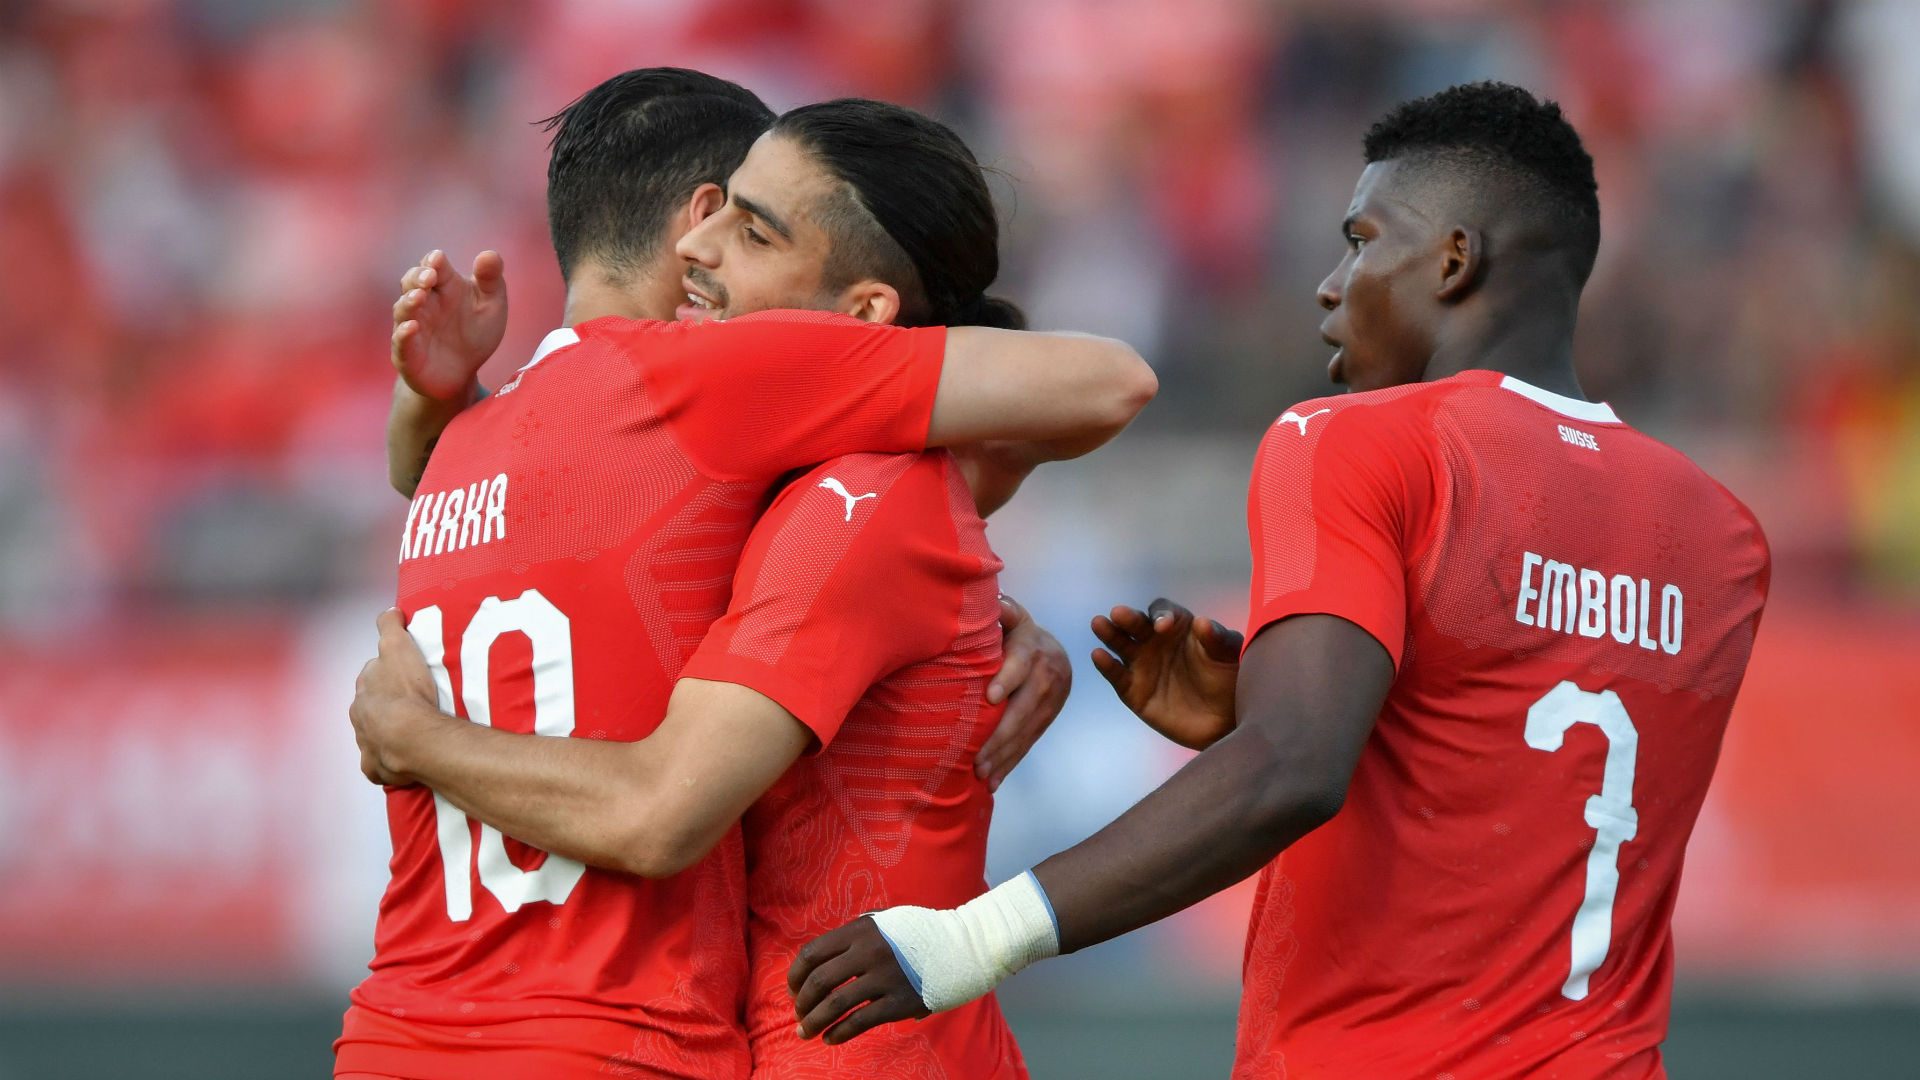 Switzerland hold Brazil in another upset at Russian Federation  2018